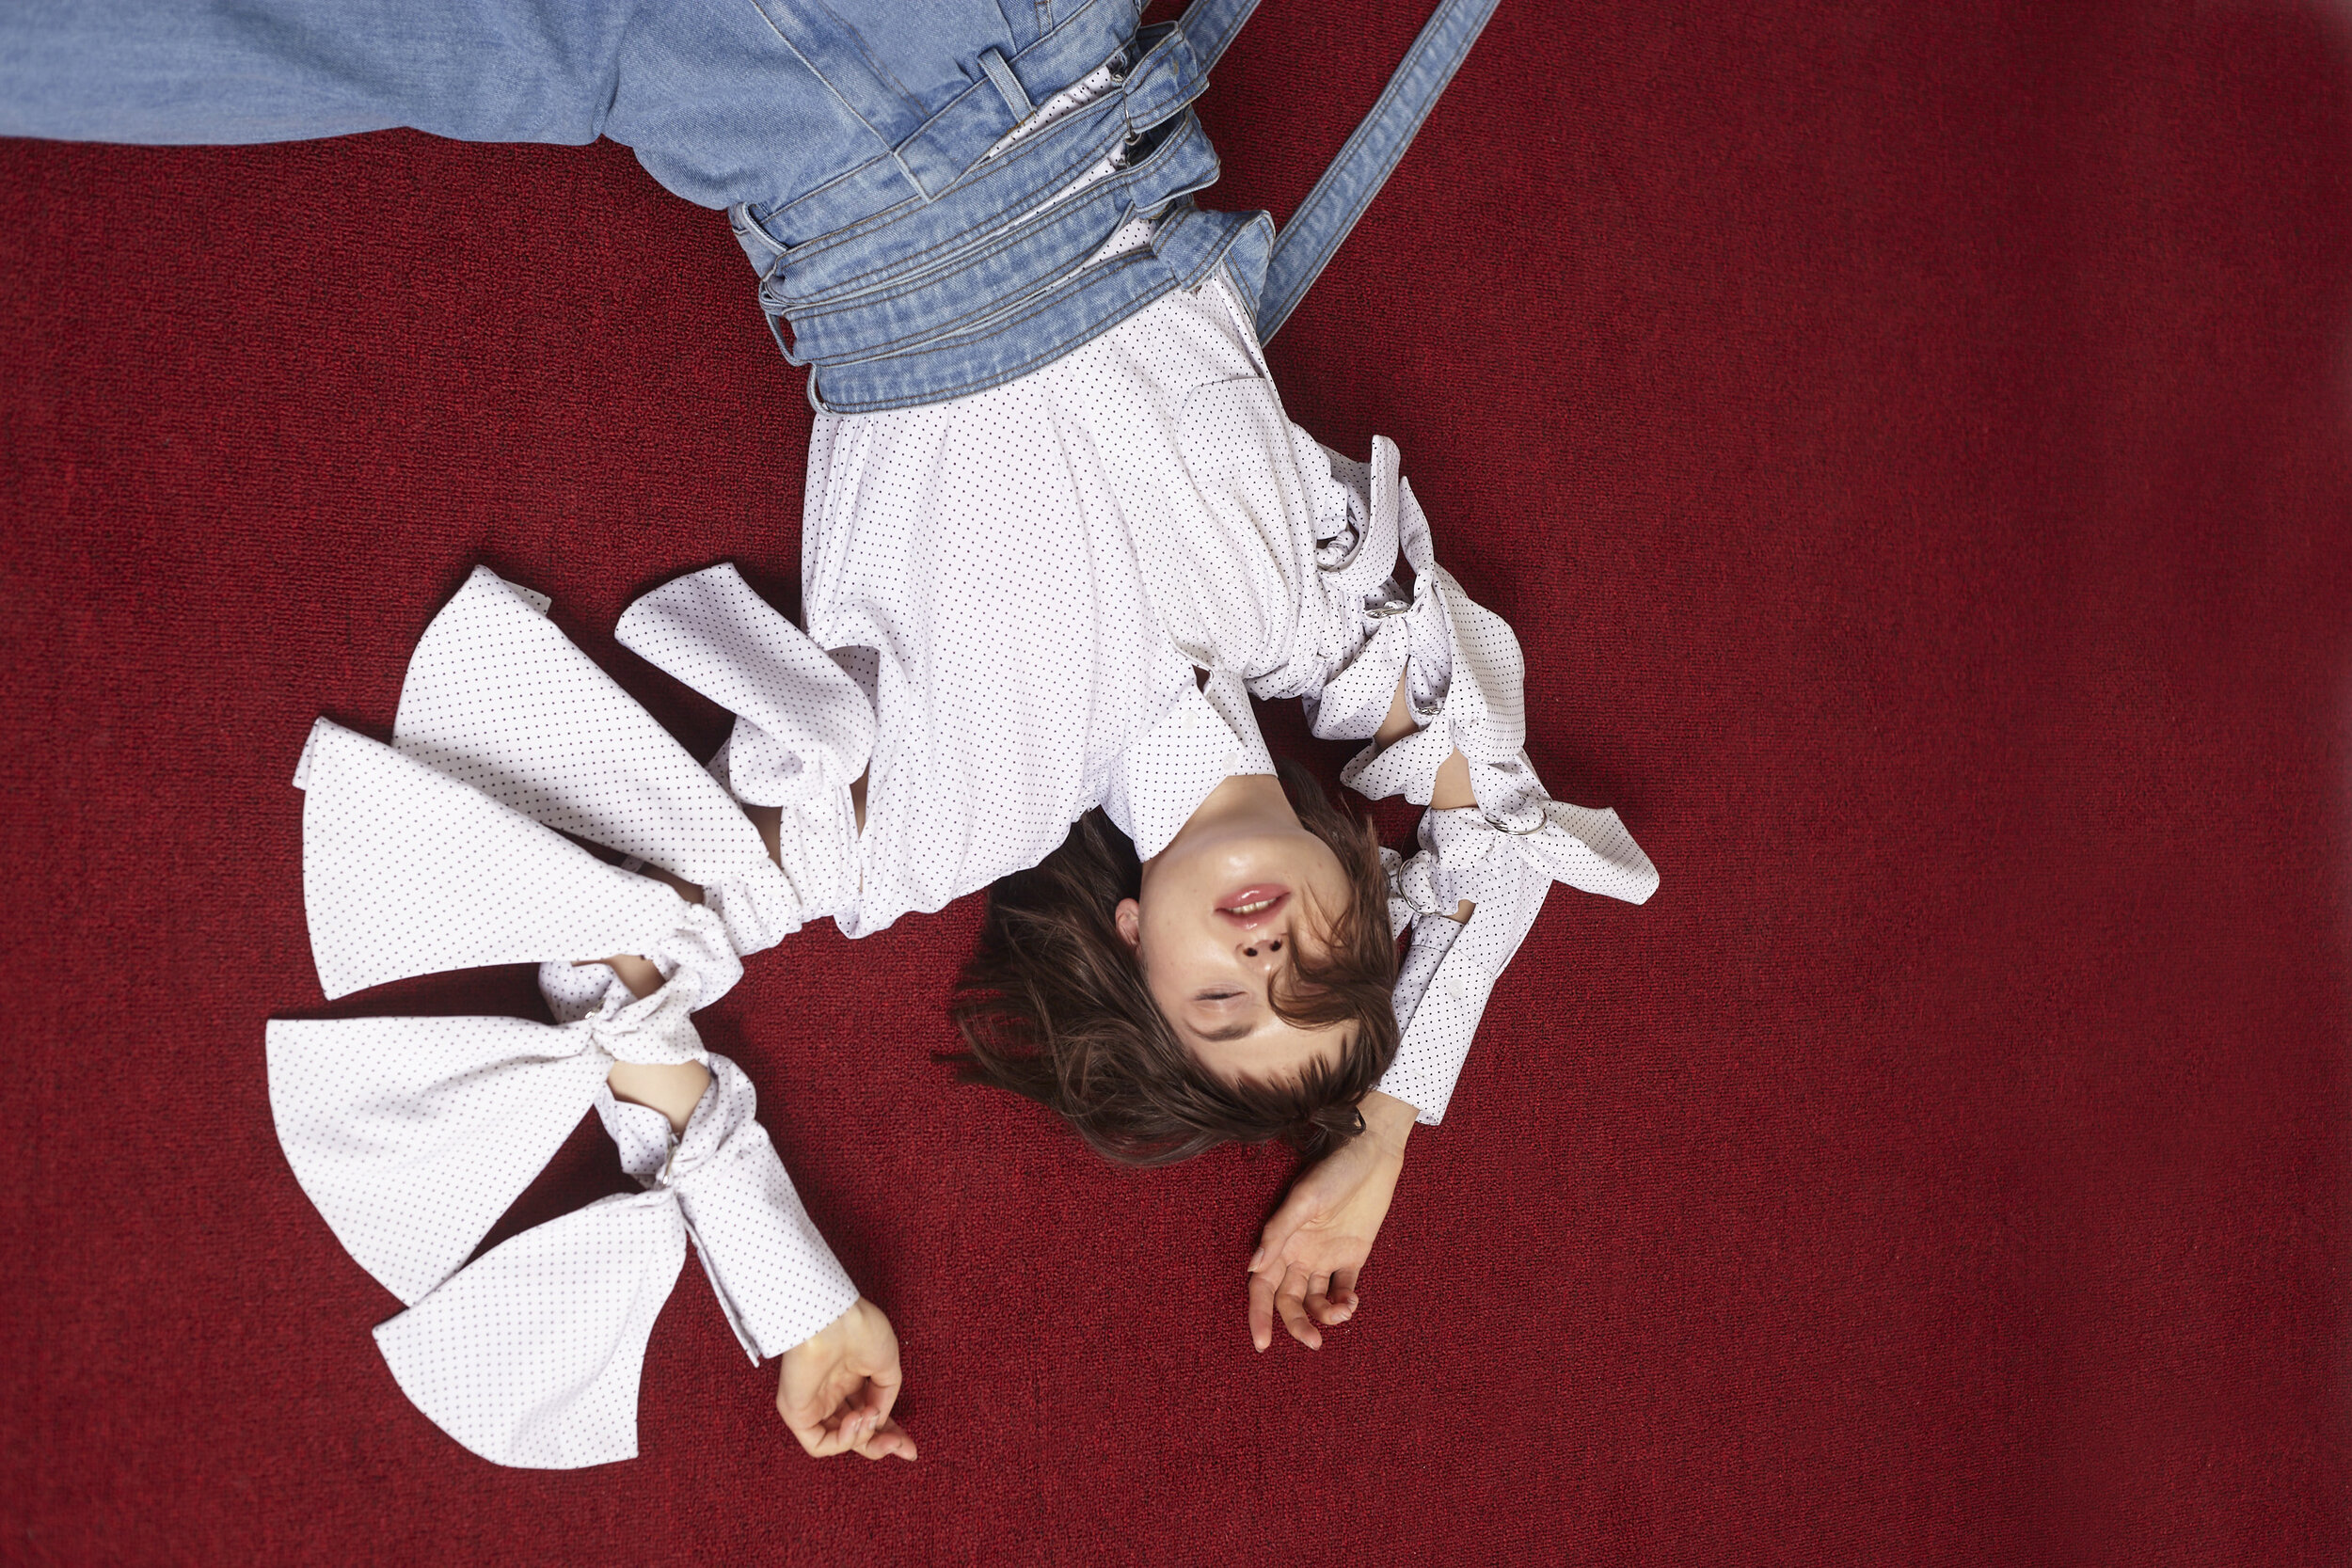 Copy of REEMAMI SS18 campaign WHITE SHIRT 2.jpg